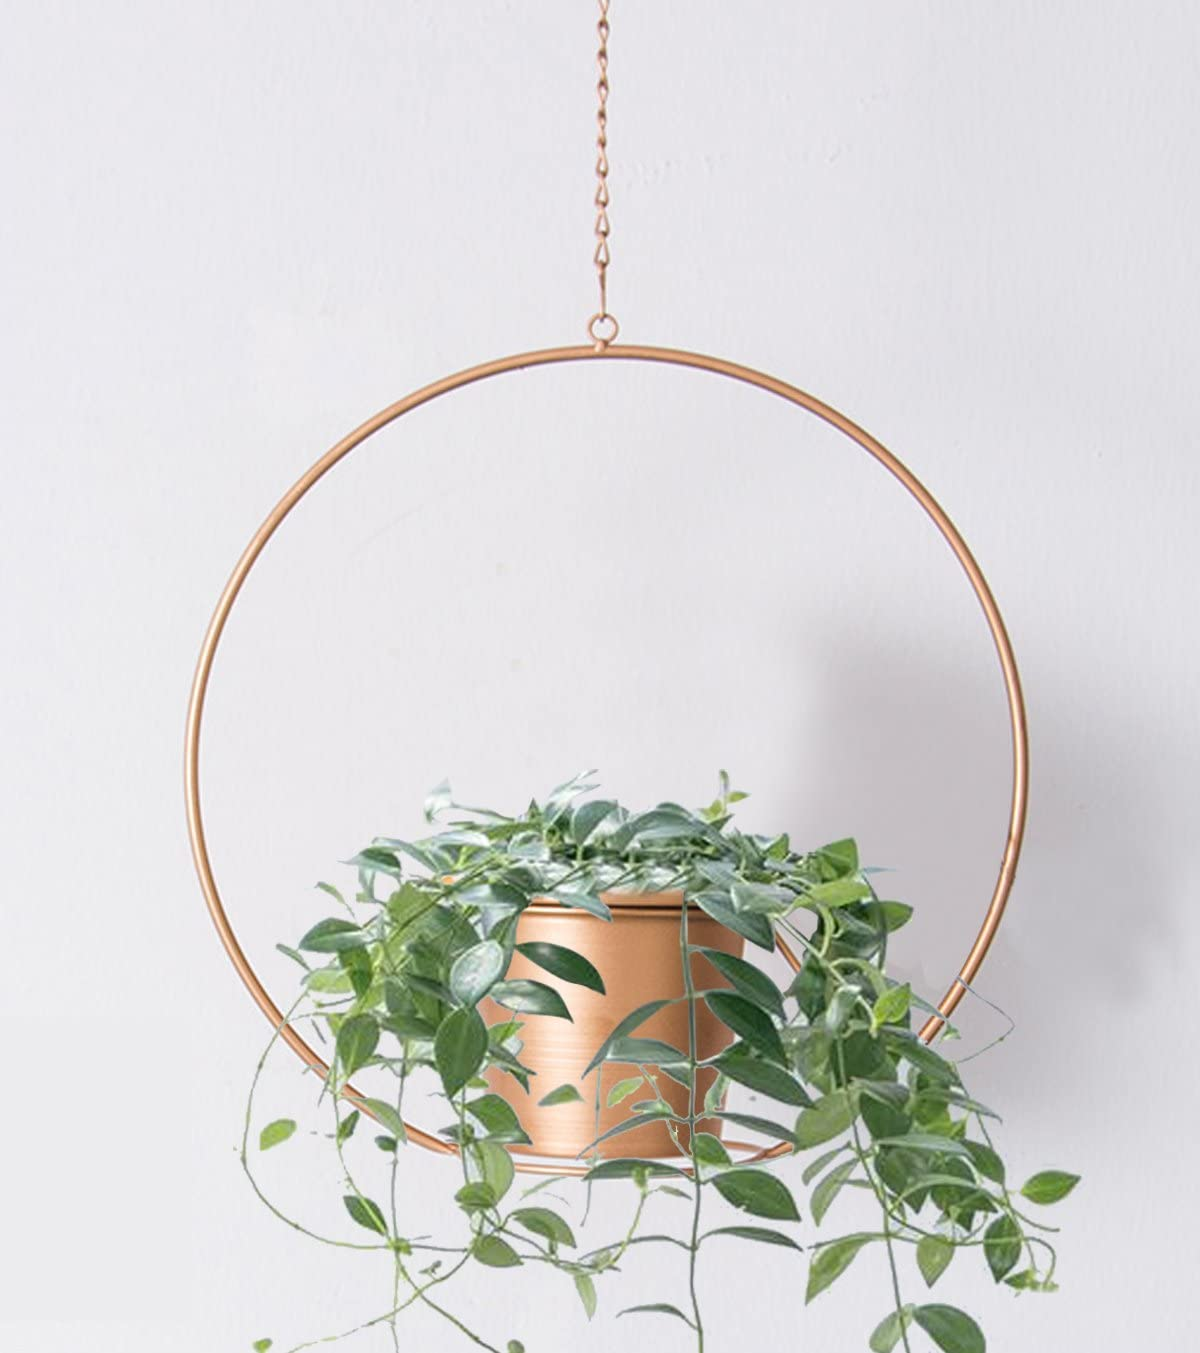 RISEON Boho Gold Metal Plant Hanger,Metal Round Hanging Planter, Modern Planter, Mid Century Plant Holder, Minimalist Planter for Indoor Outdoor Home Decor